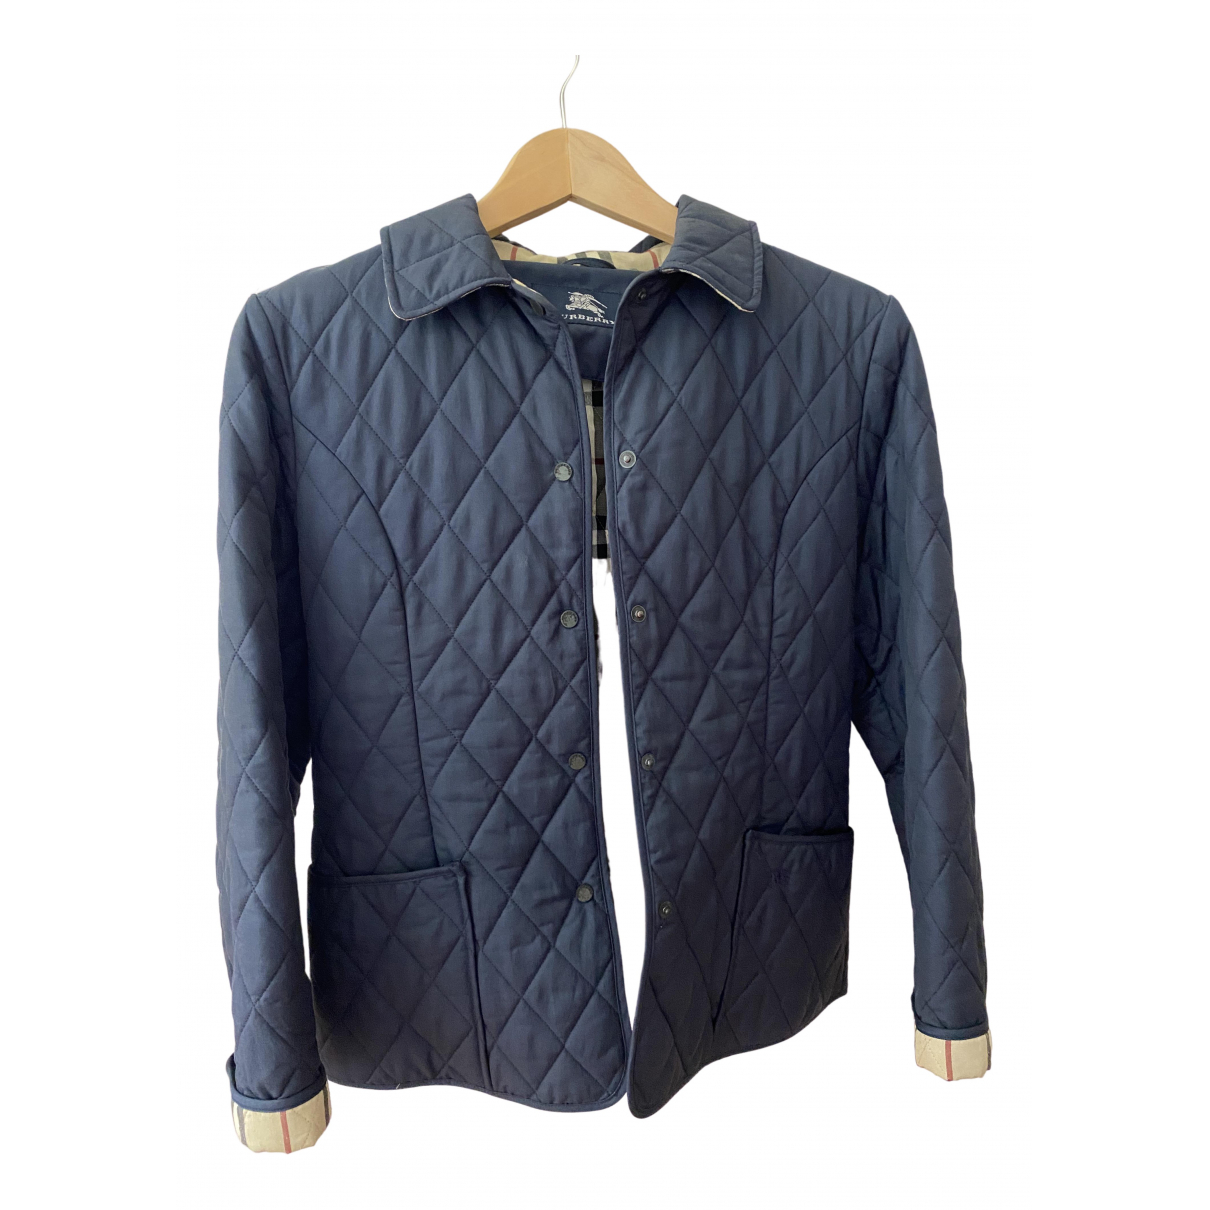 Burberry N Blue jacket & coat for Kids 12 years - XS FR